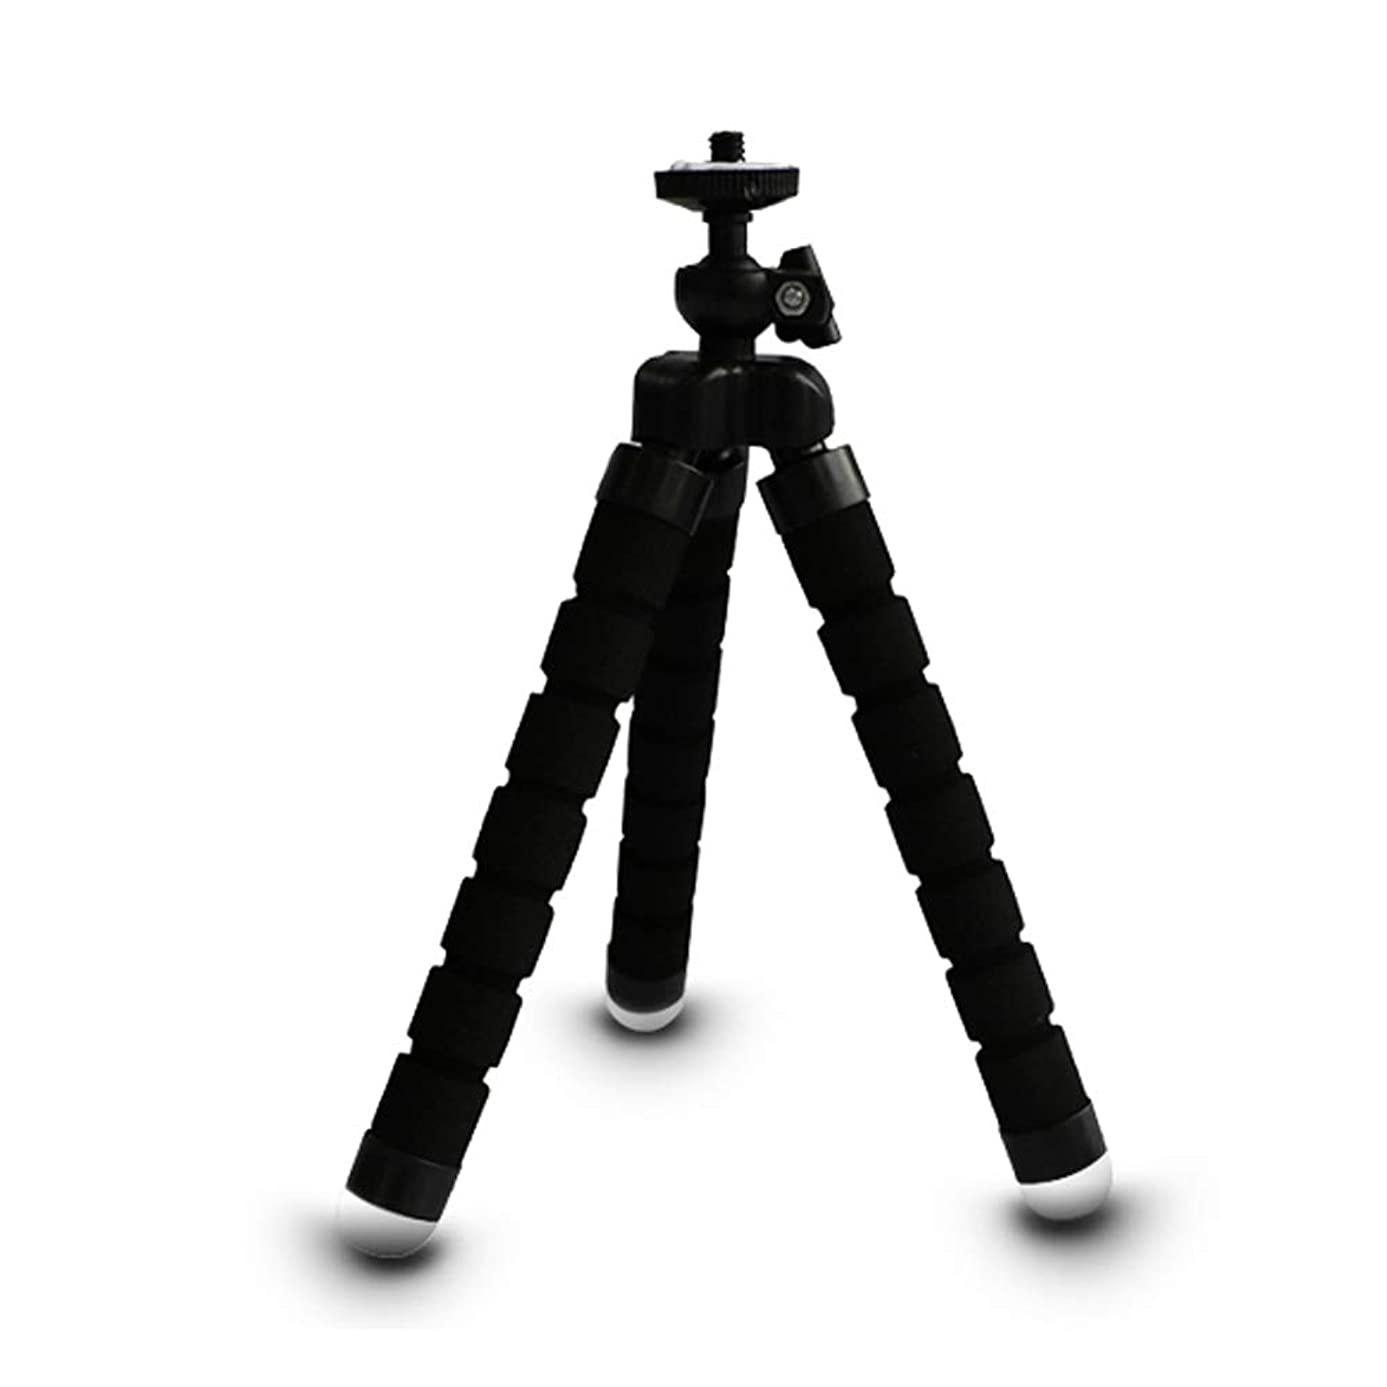 Accessory for Laser Beam Pro C200 Projector Accessories - Flexible Strong Tripod for C200 Projector Stand (Octopus Tripod)